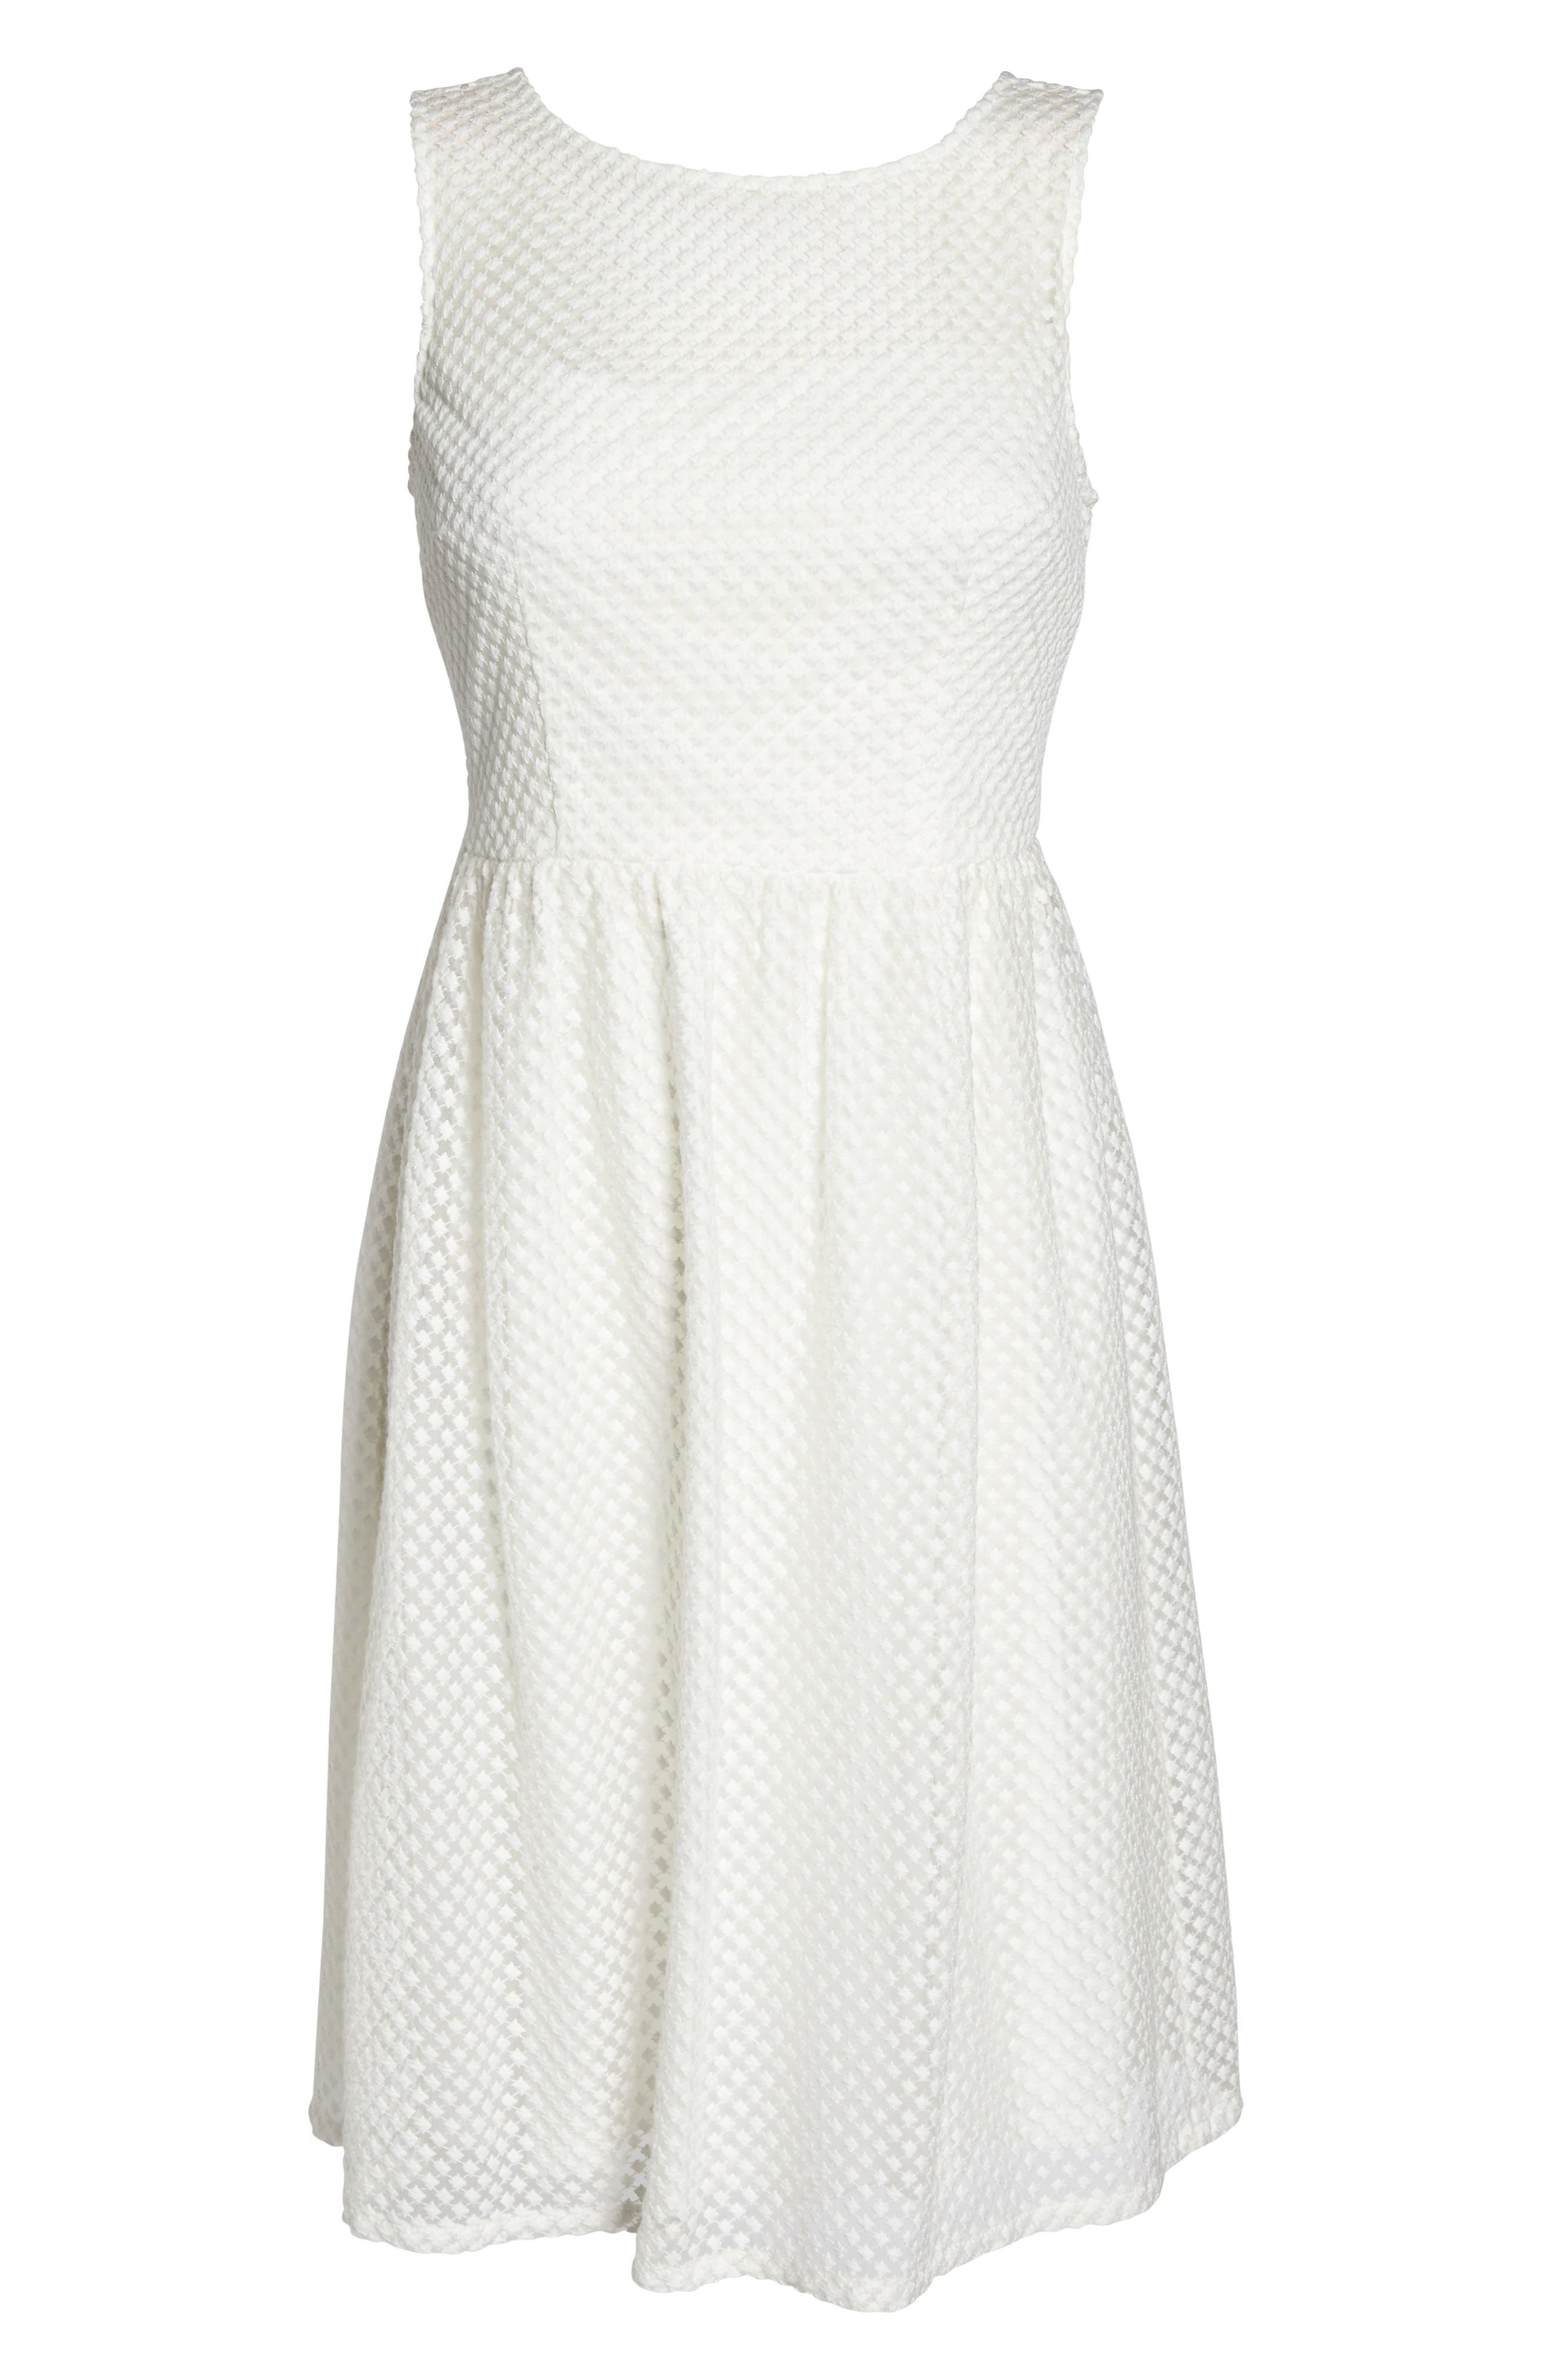 Embroidered Diamonds Fit & Flare Dress,                             Alternate thumbnail 6, color,                             900